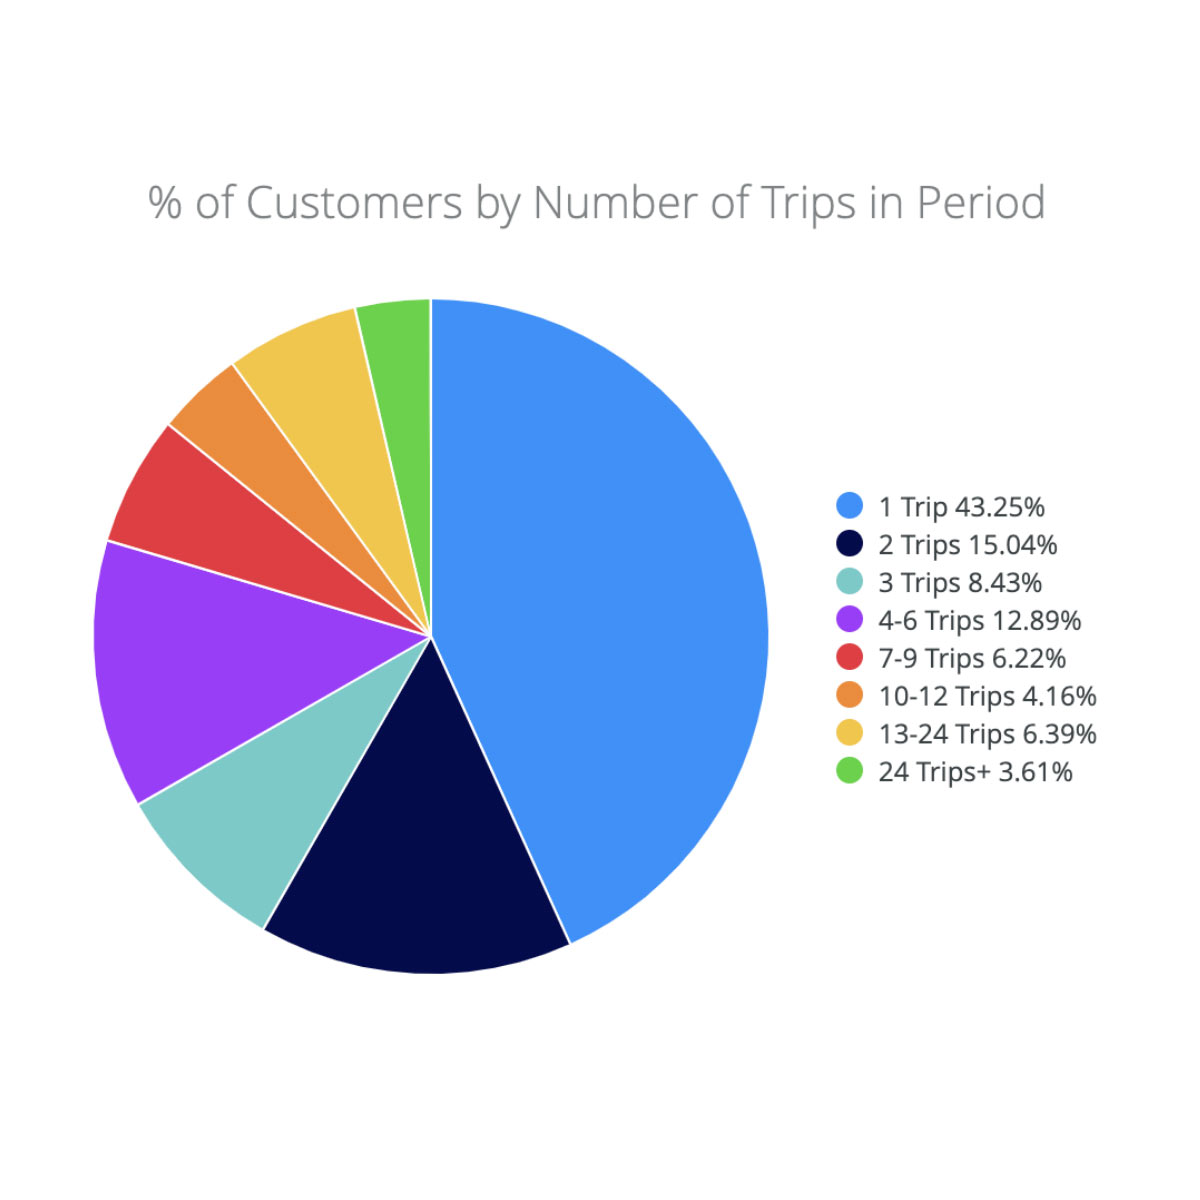 % of cannabis customers by number of trips in period